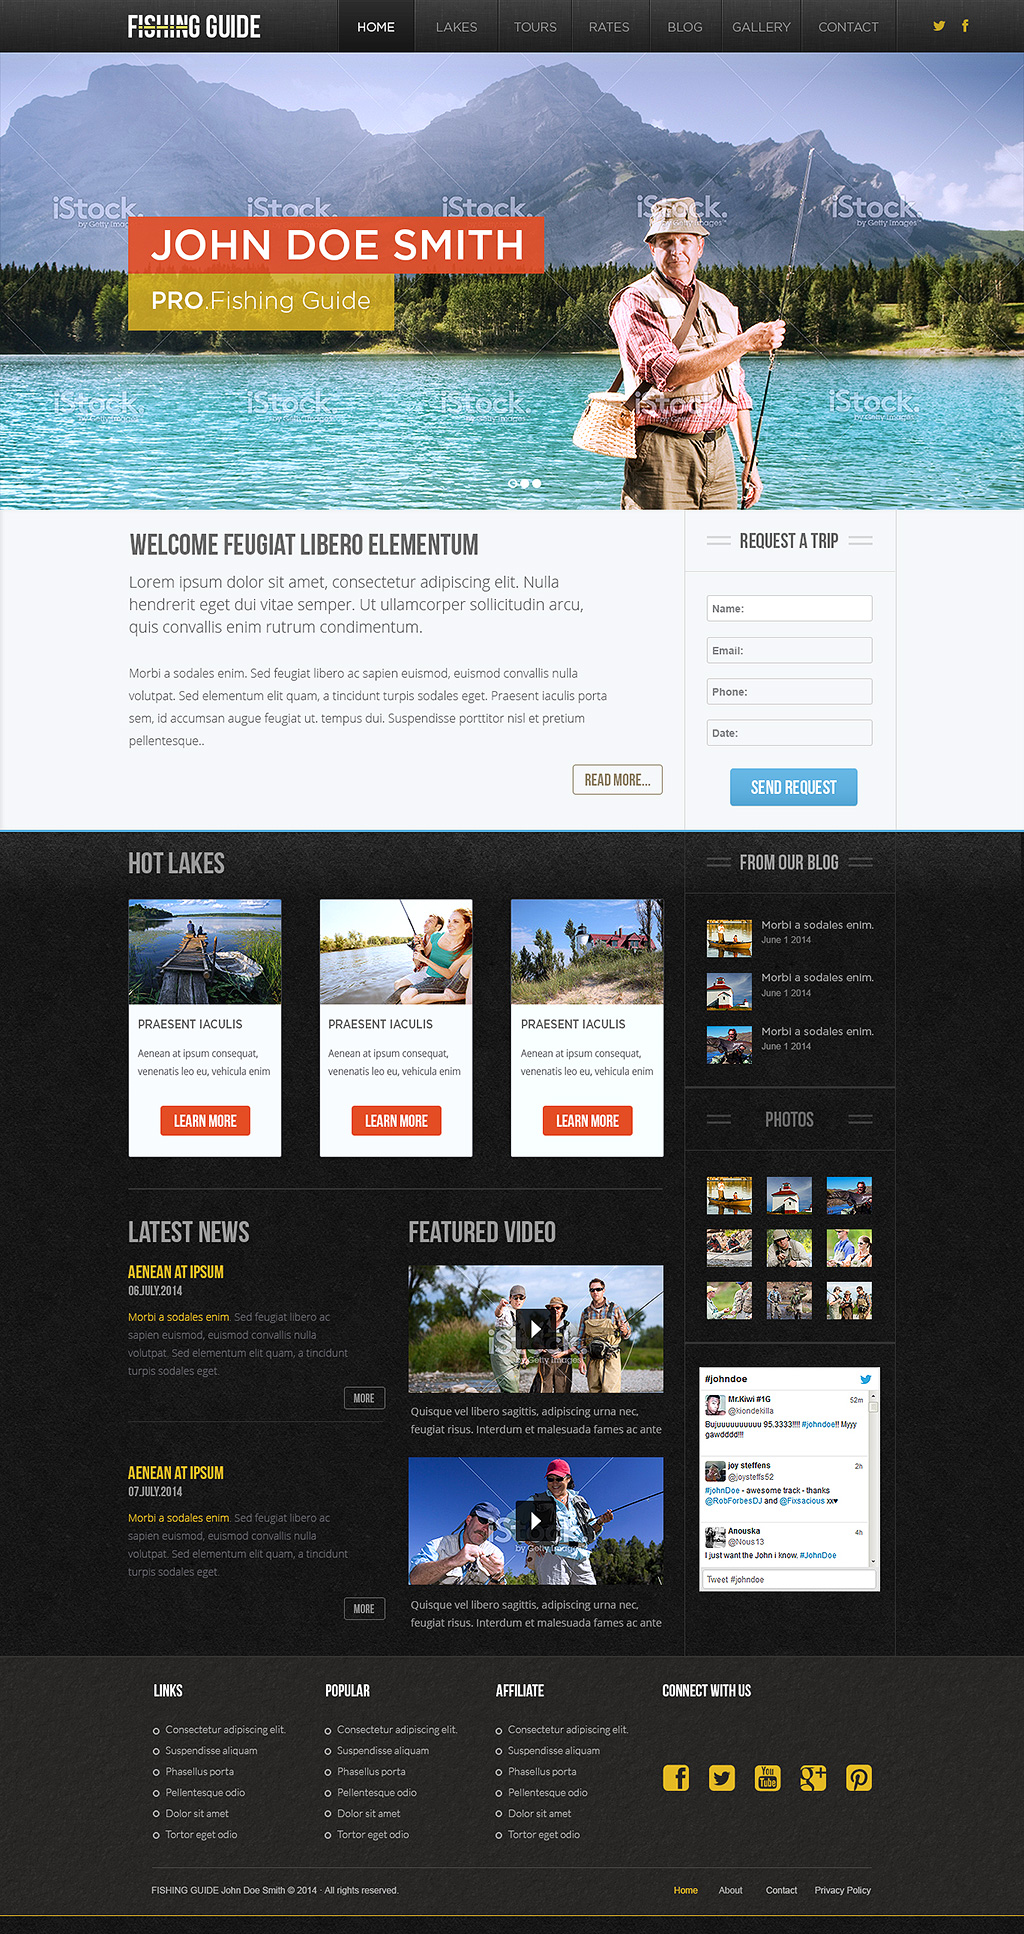 PRO Fishing Guide Theme - B